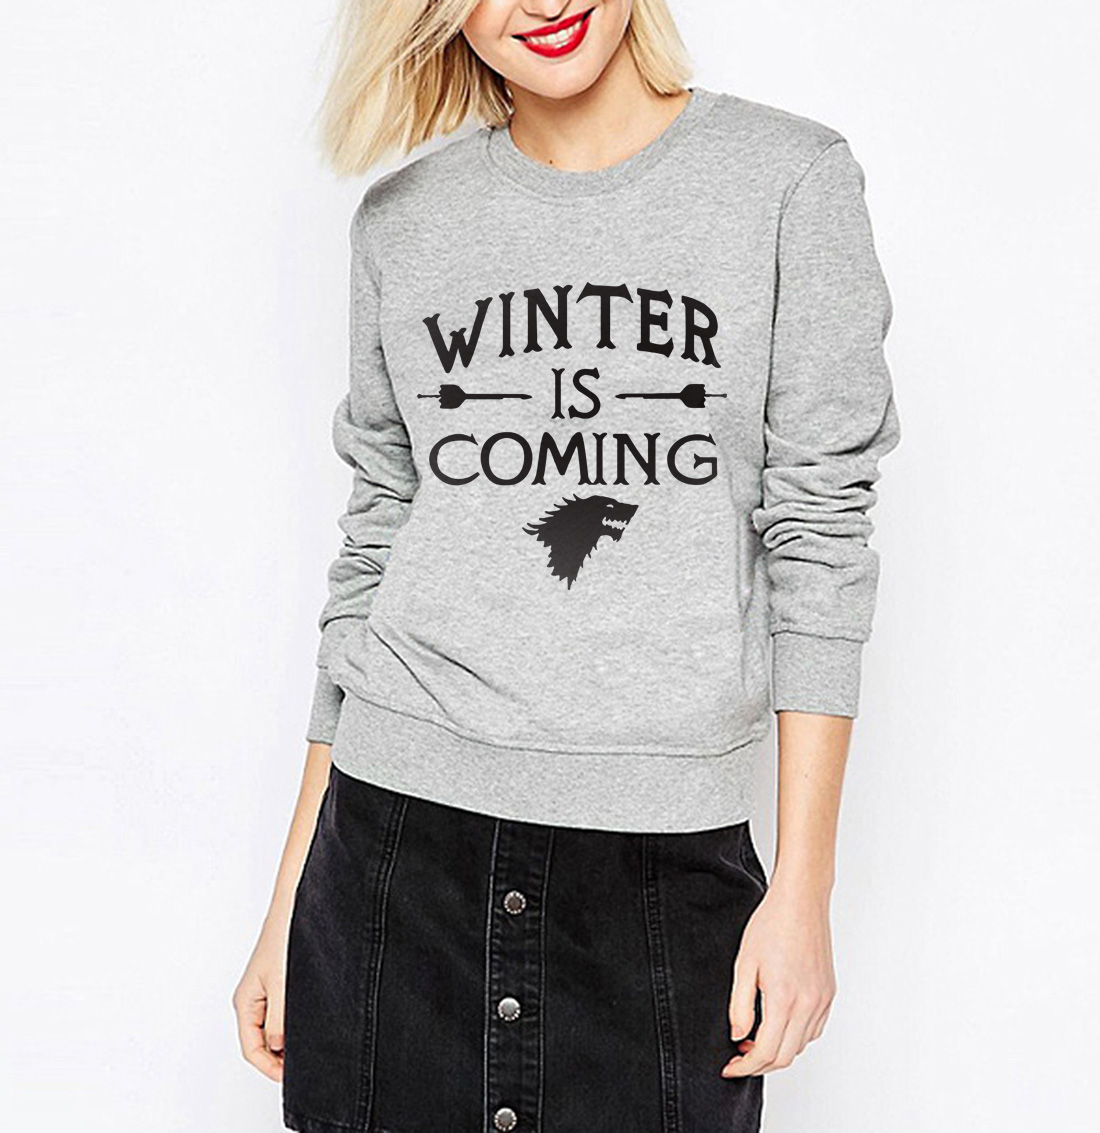 sweatshirt-winter-is-coming-woman4-asylum4nerd